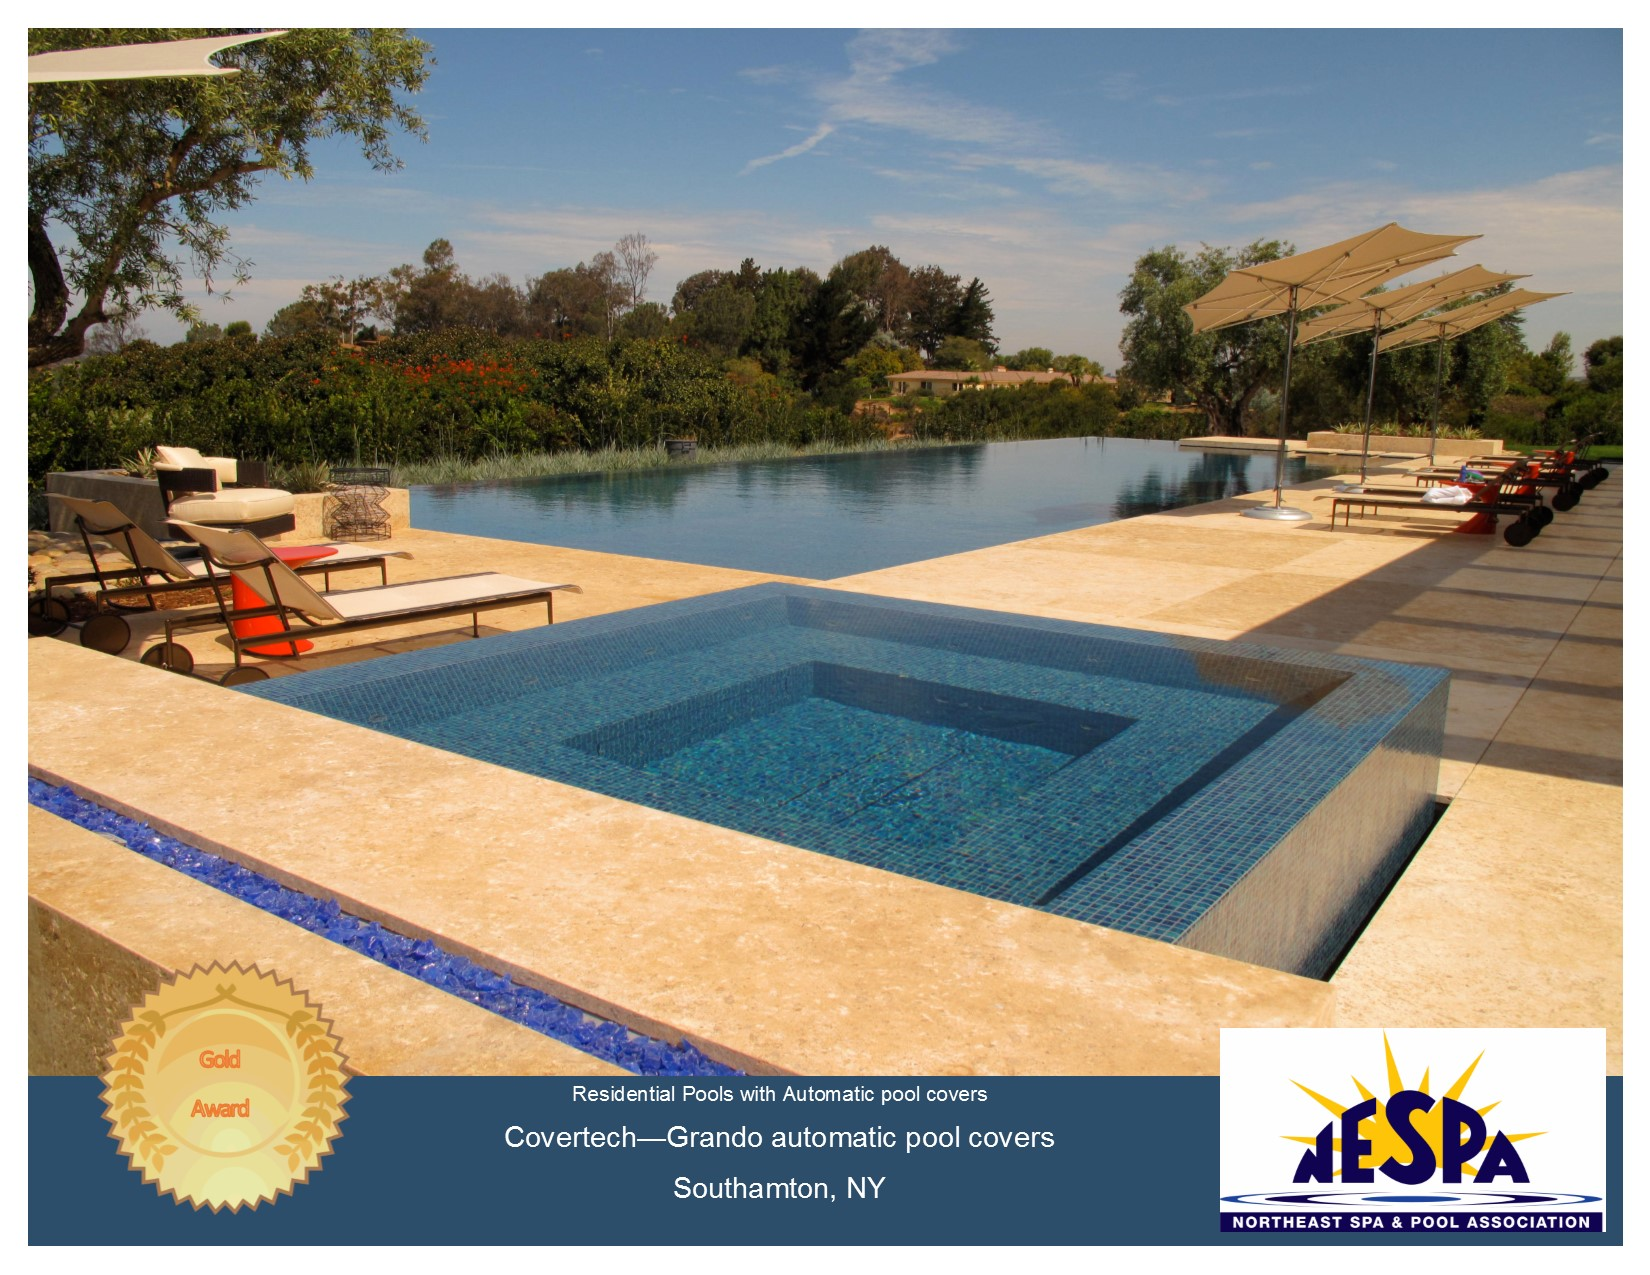 Covertech - Grando automatic rigid free form pool cover GOLD2 Award North East Pool & SPA 2016